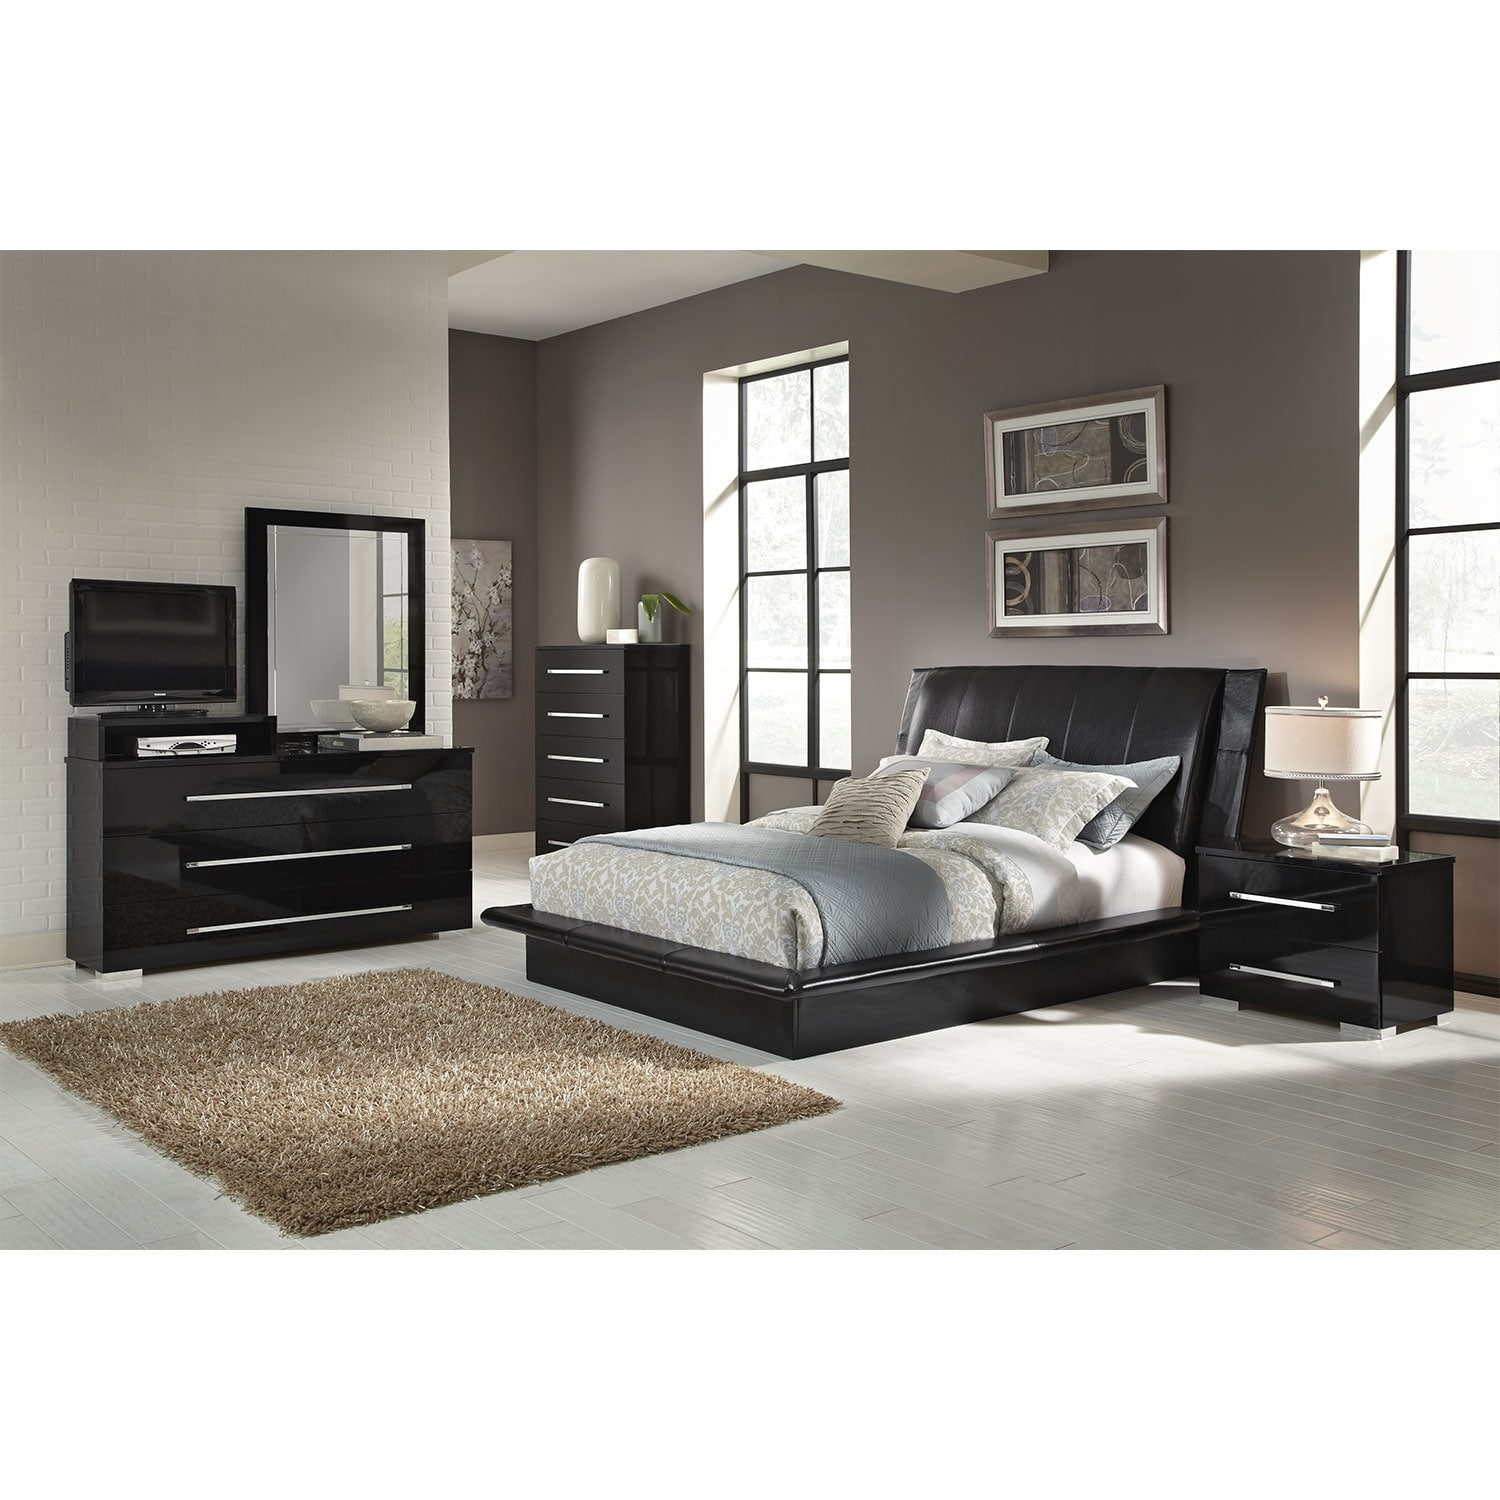 Dimora 7-Piece Queen Upholstered Bedroom Set with Media Dresser ...